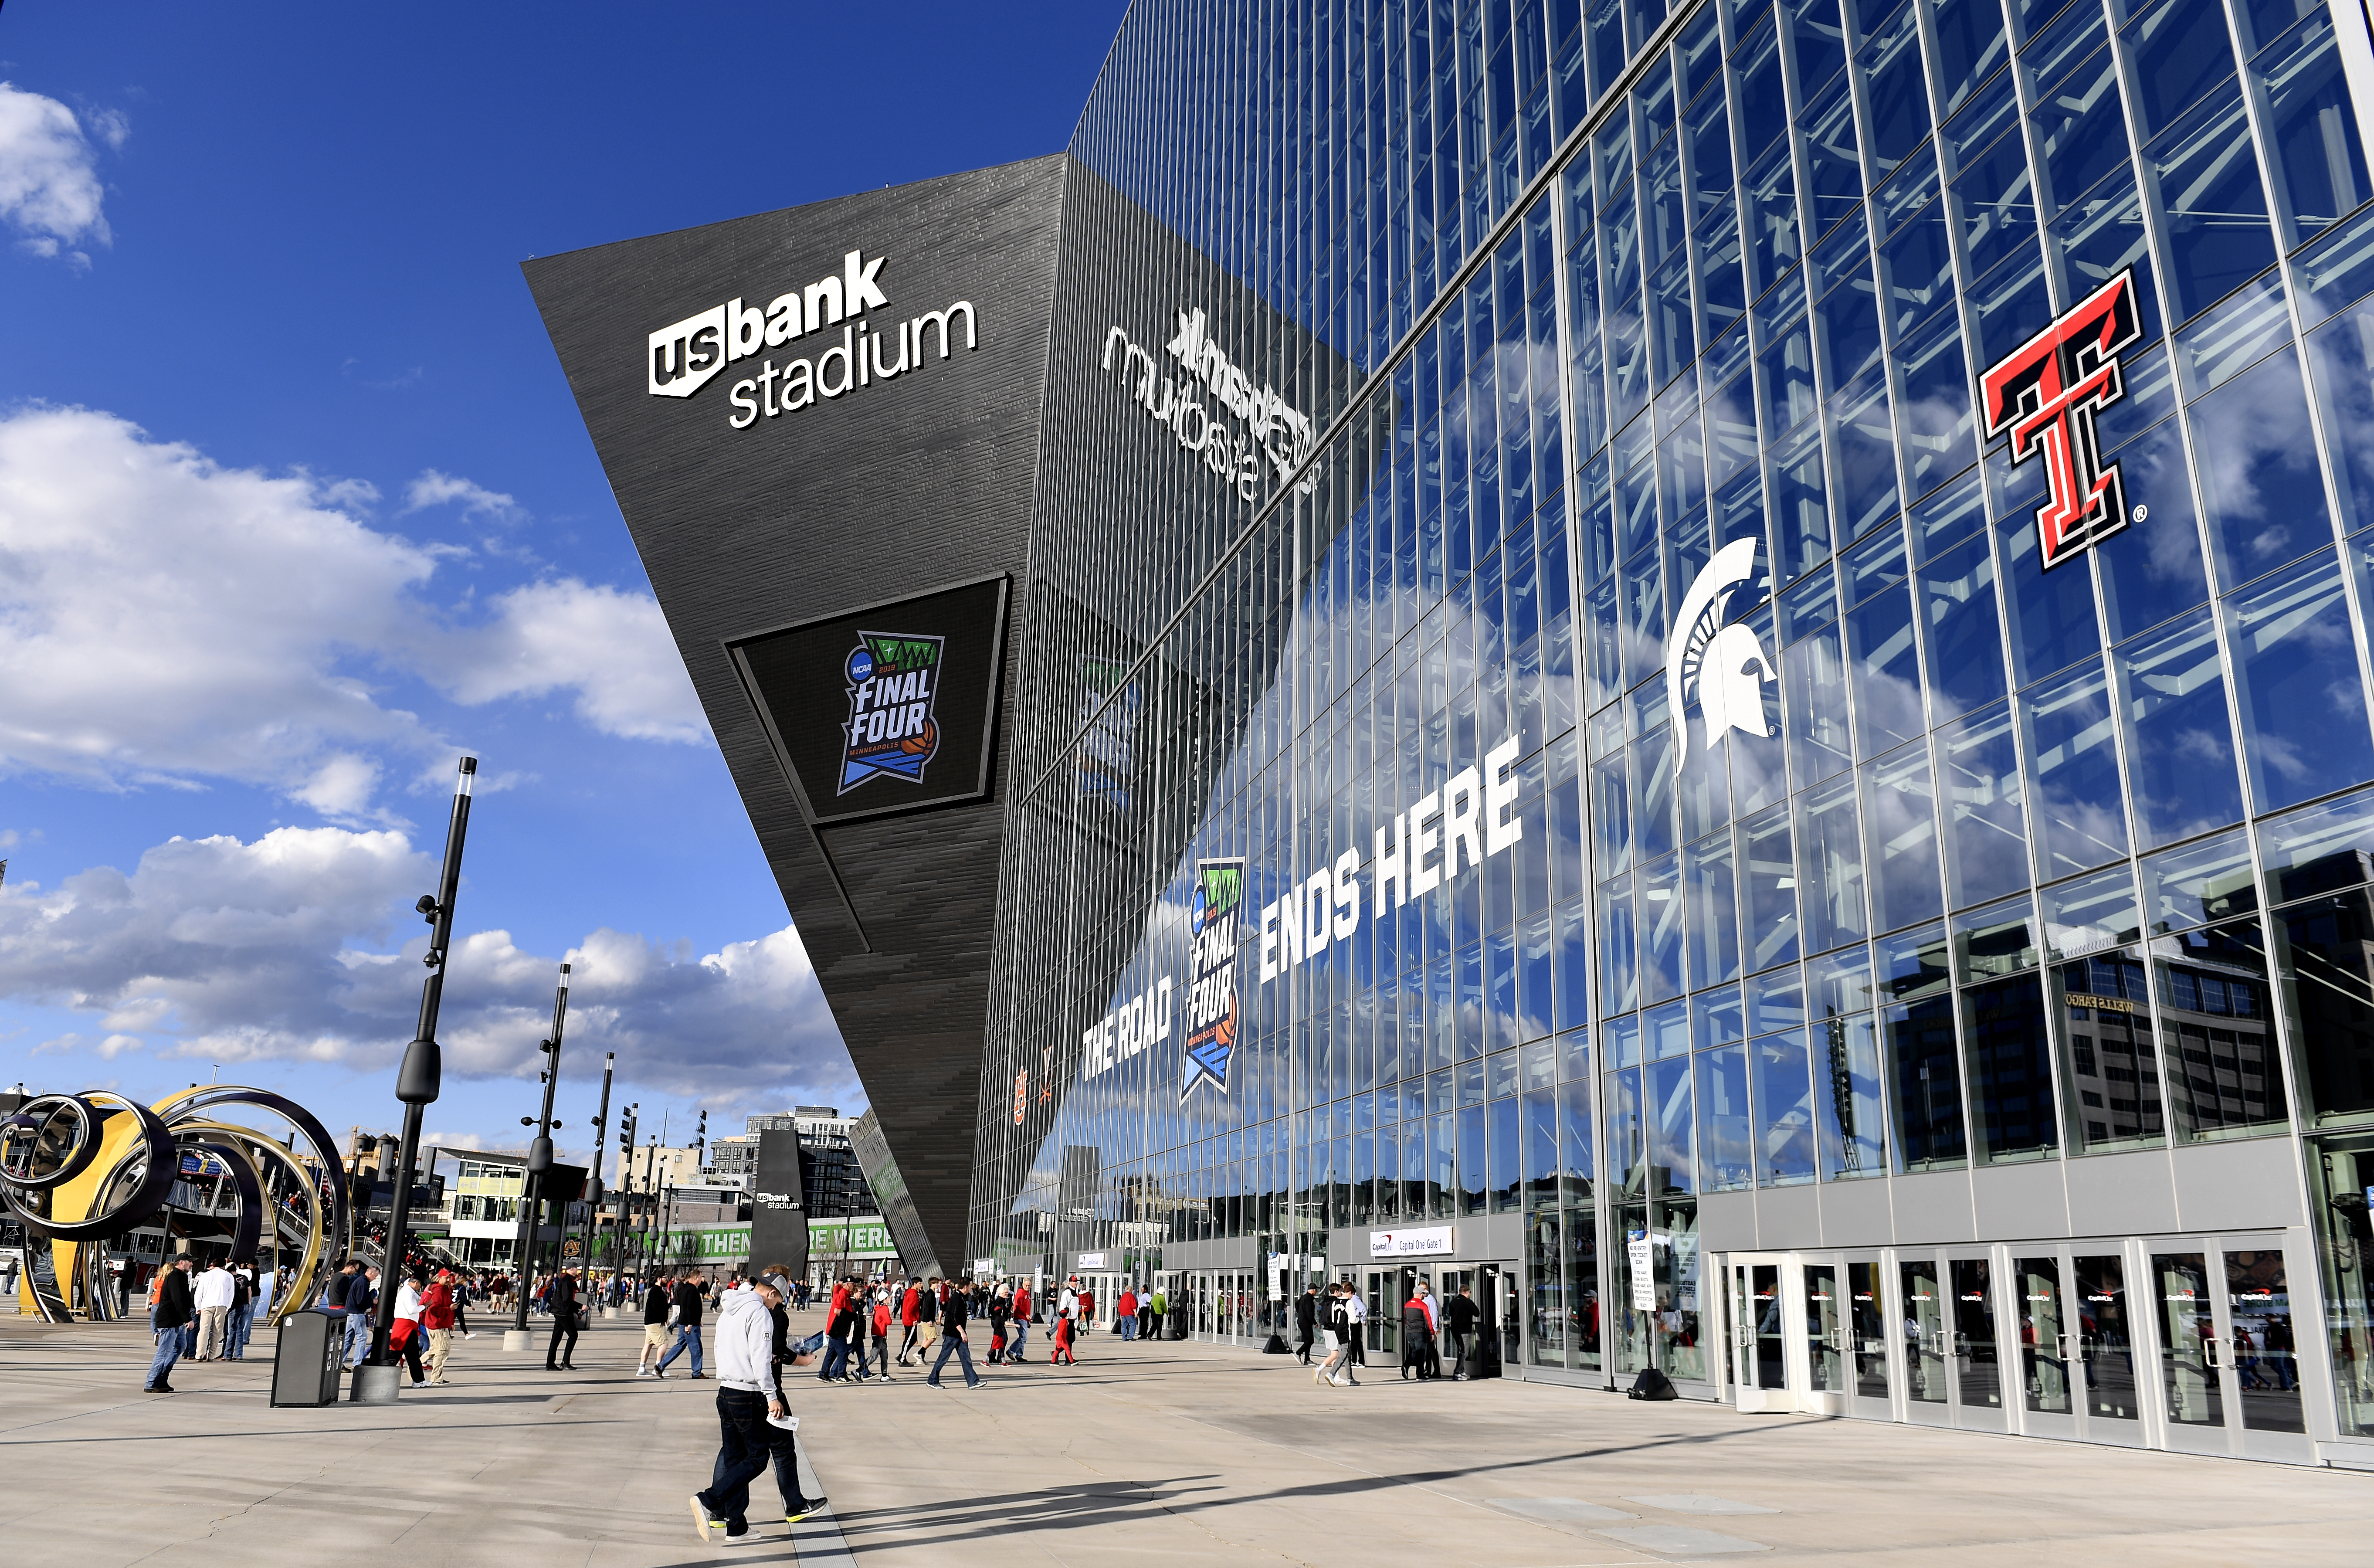 An exterior view of U.S. Bank Stadium prior to the 2019 NCAA men's Final Four National Championship game between the Virginia Cavaliers and the Texas Tech Red Raiders at U.S. Bank Stadium on April 08, 2019 in Minneapolis, Minnesota. (Hannah Foslien/Getty Images)